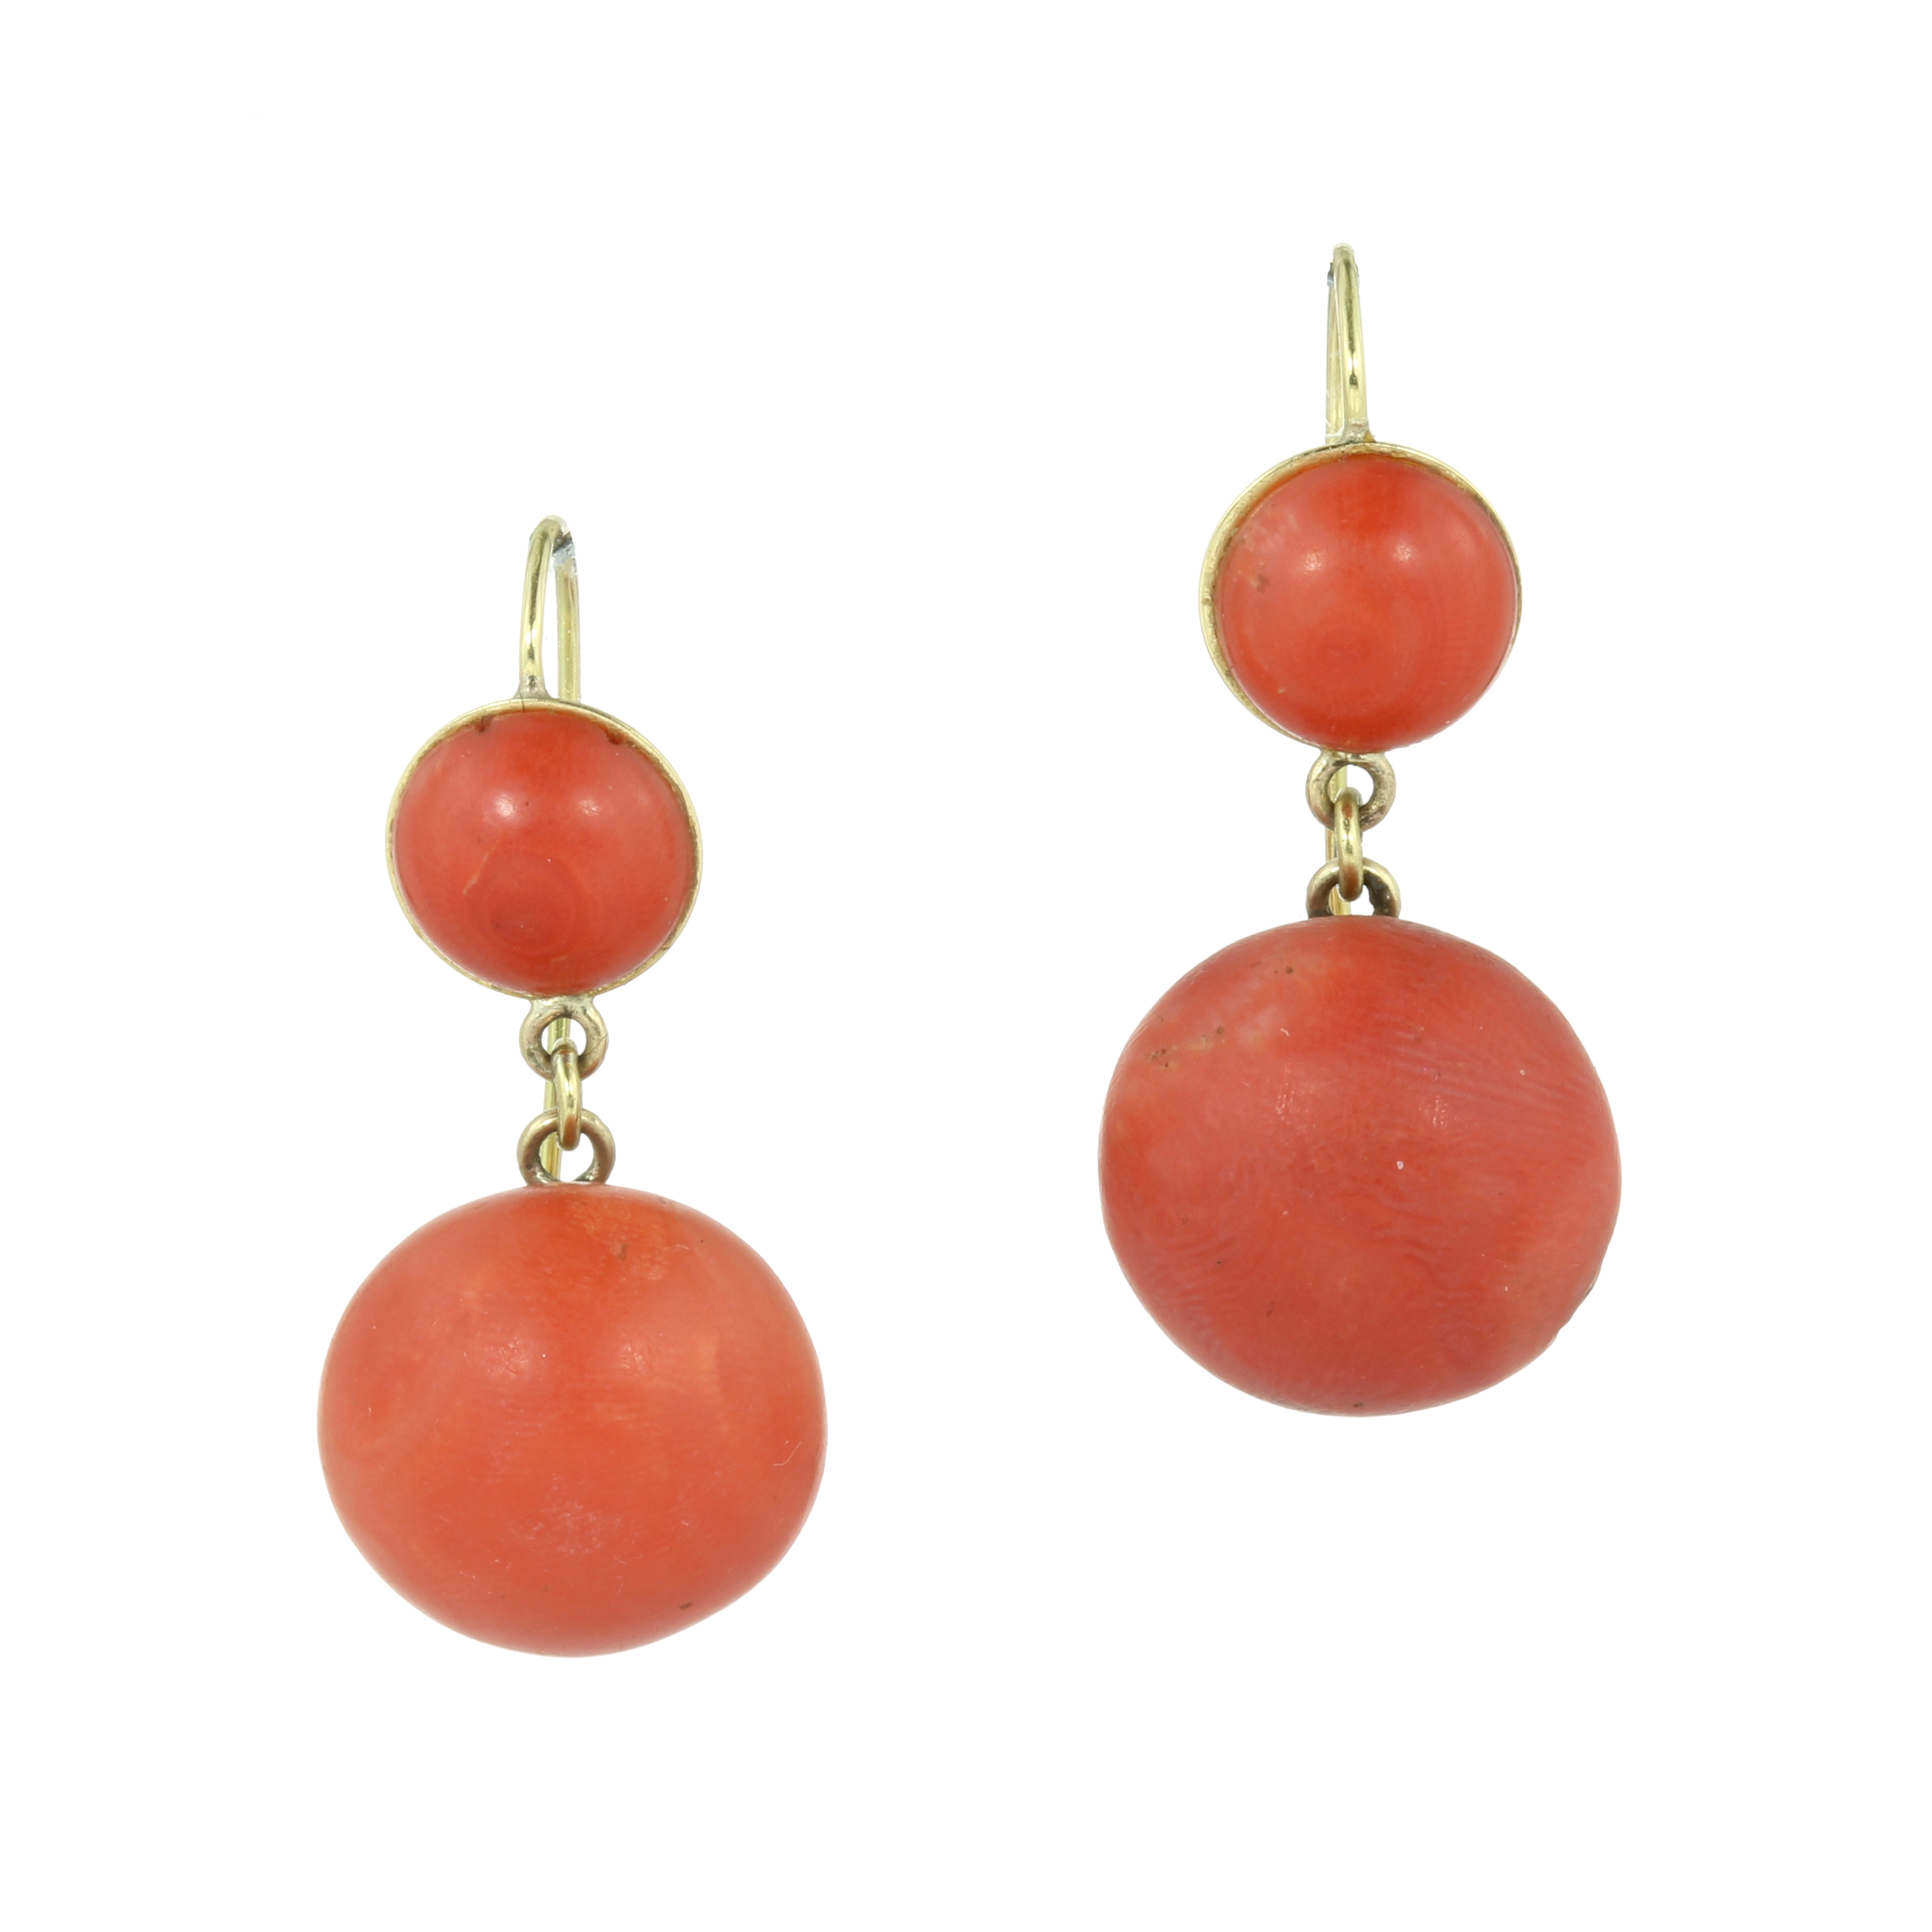 Los 14 - A PAIR OF ANTIQUE CORAL DROP EARRINGS in 18ct yellow gold each set with a large coral cabochon of